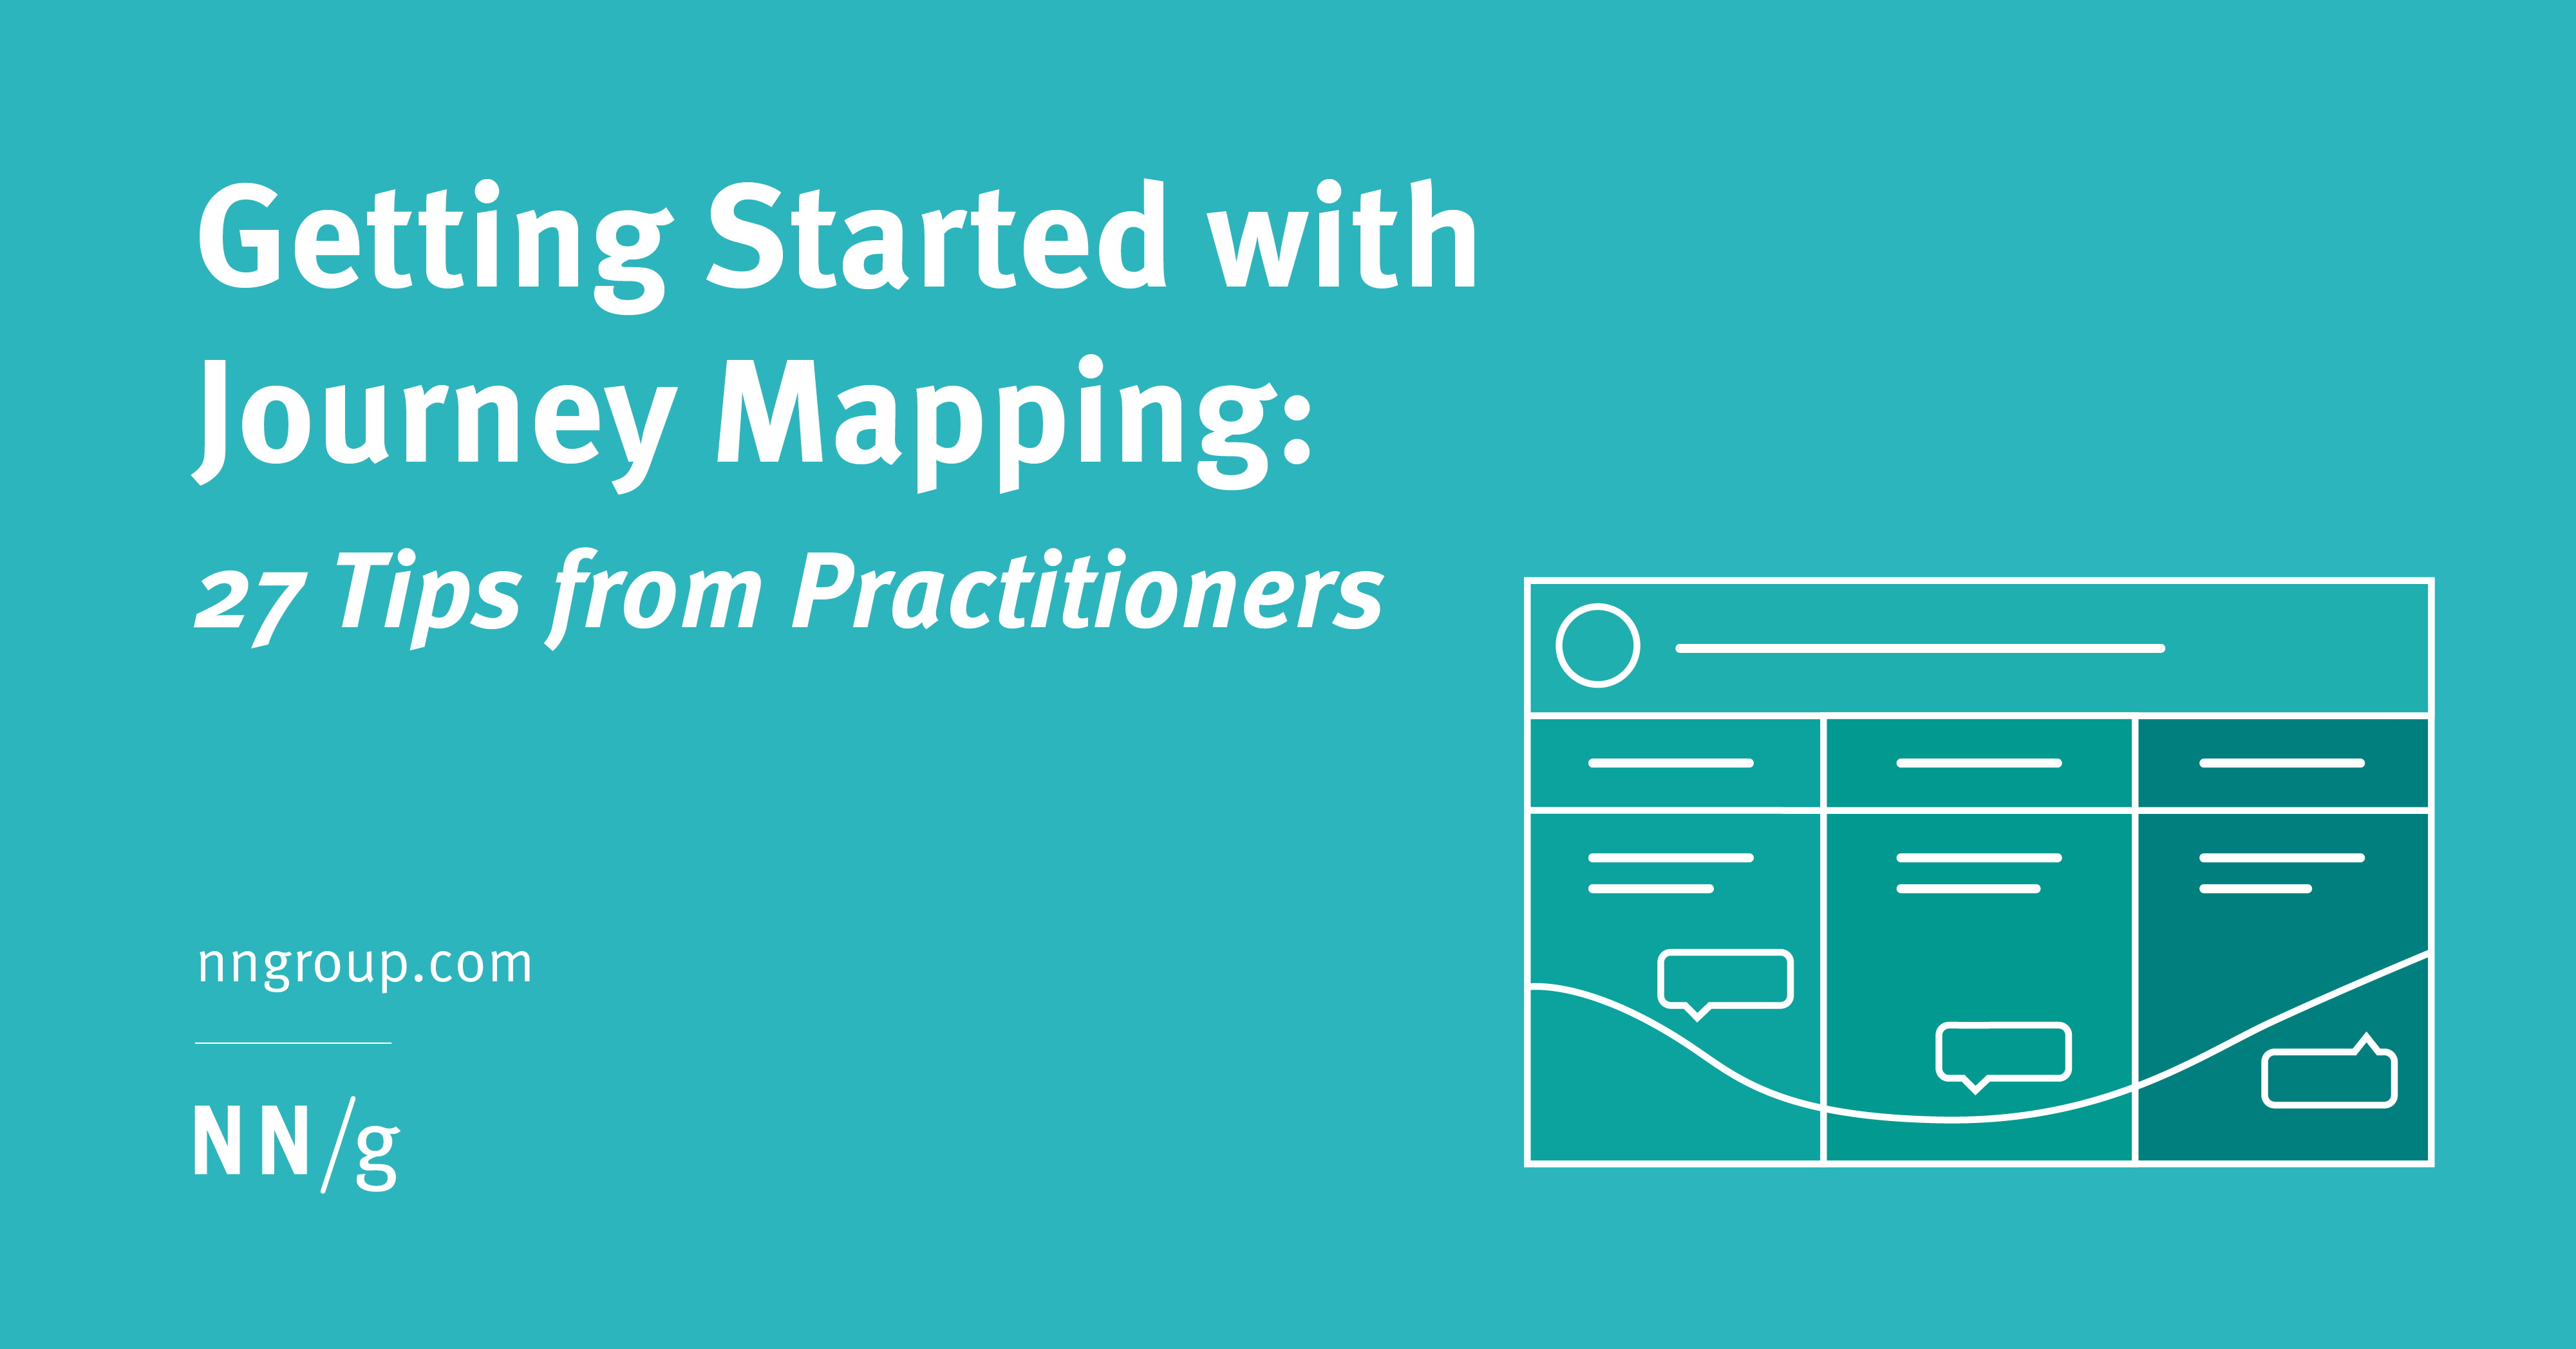 Getting Started with Journey Mapping: 27 Tips from Practitioners